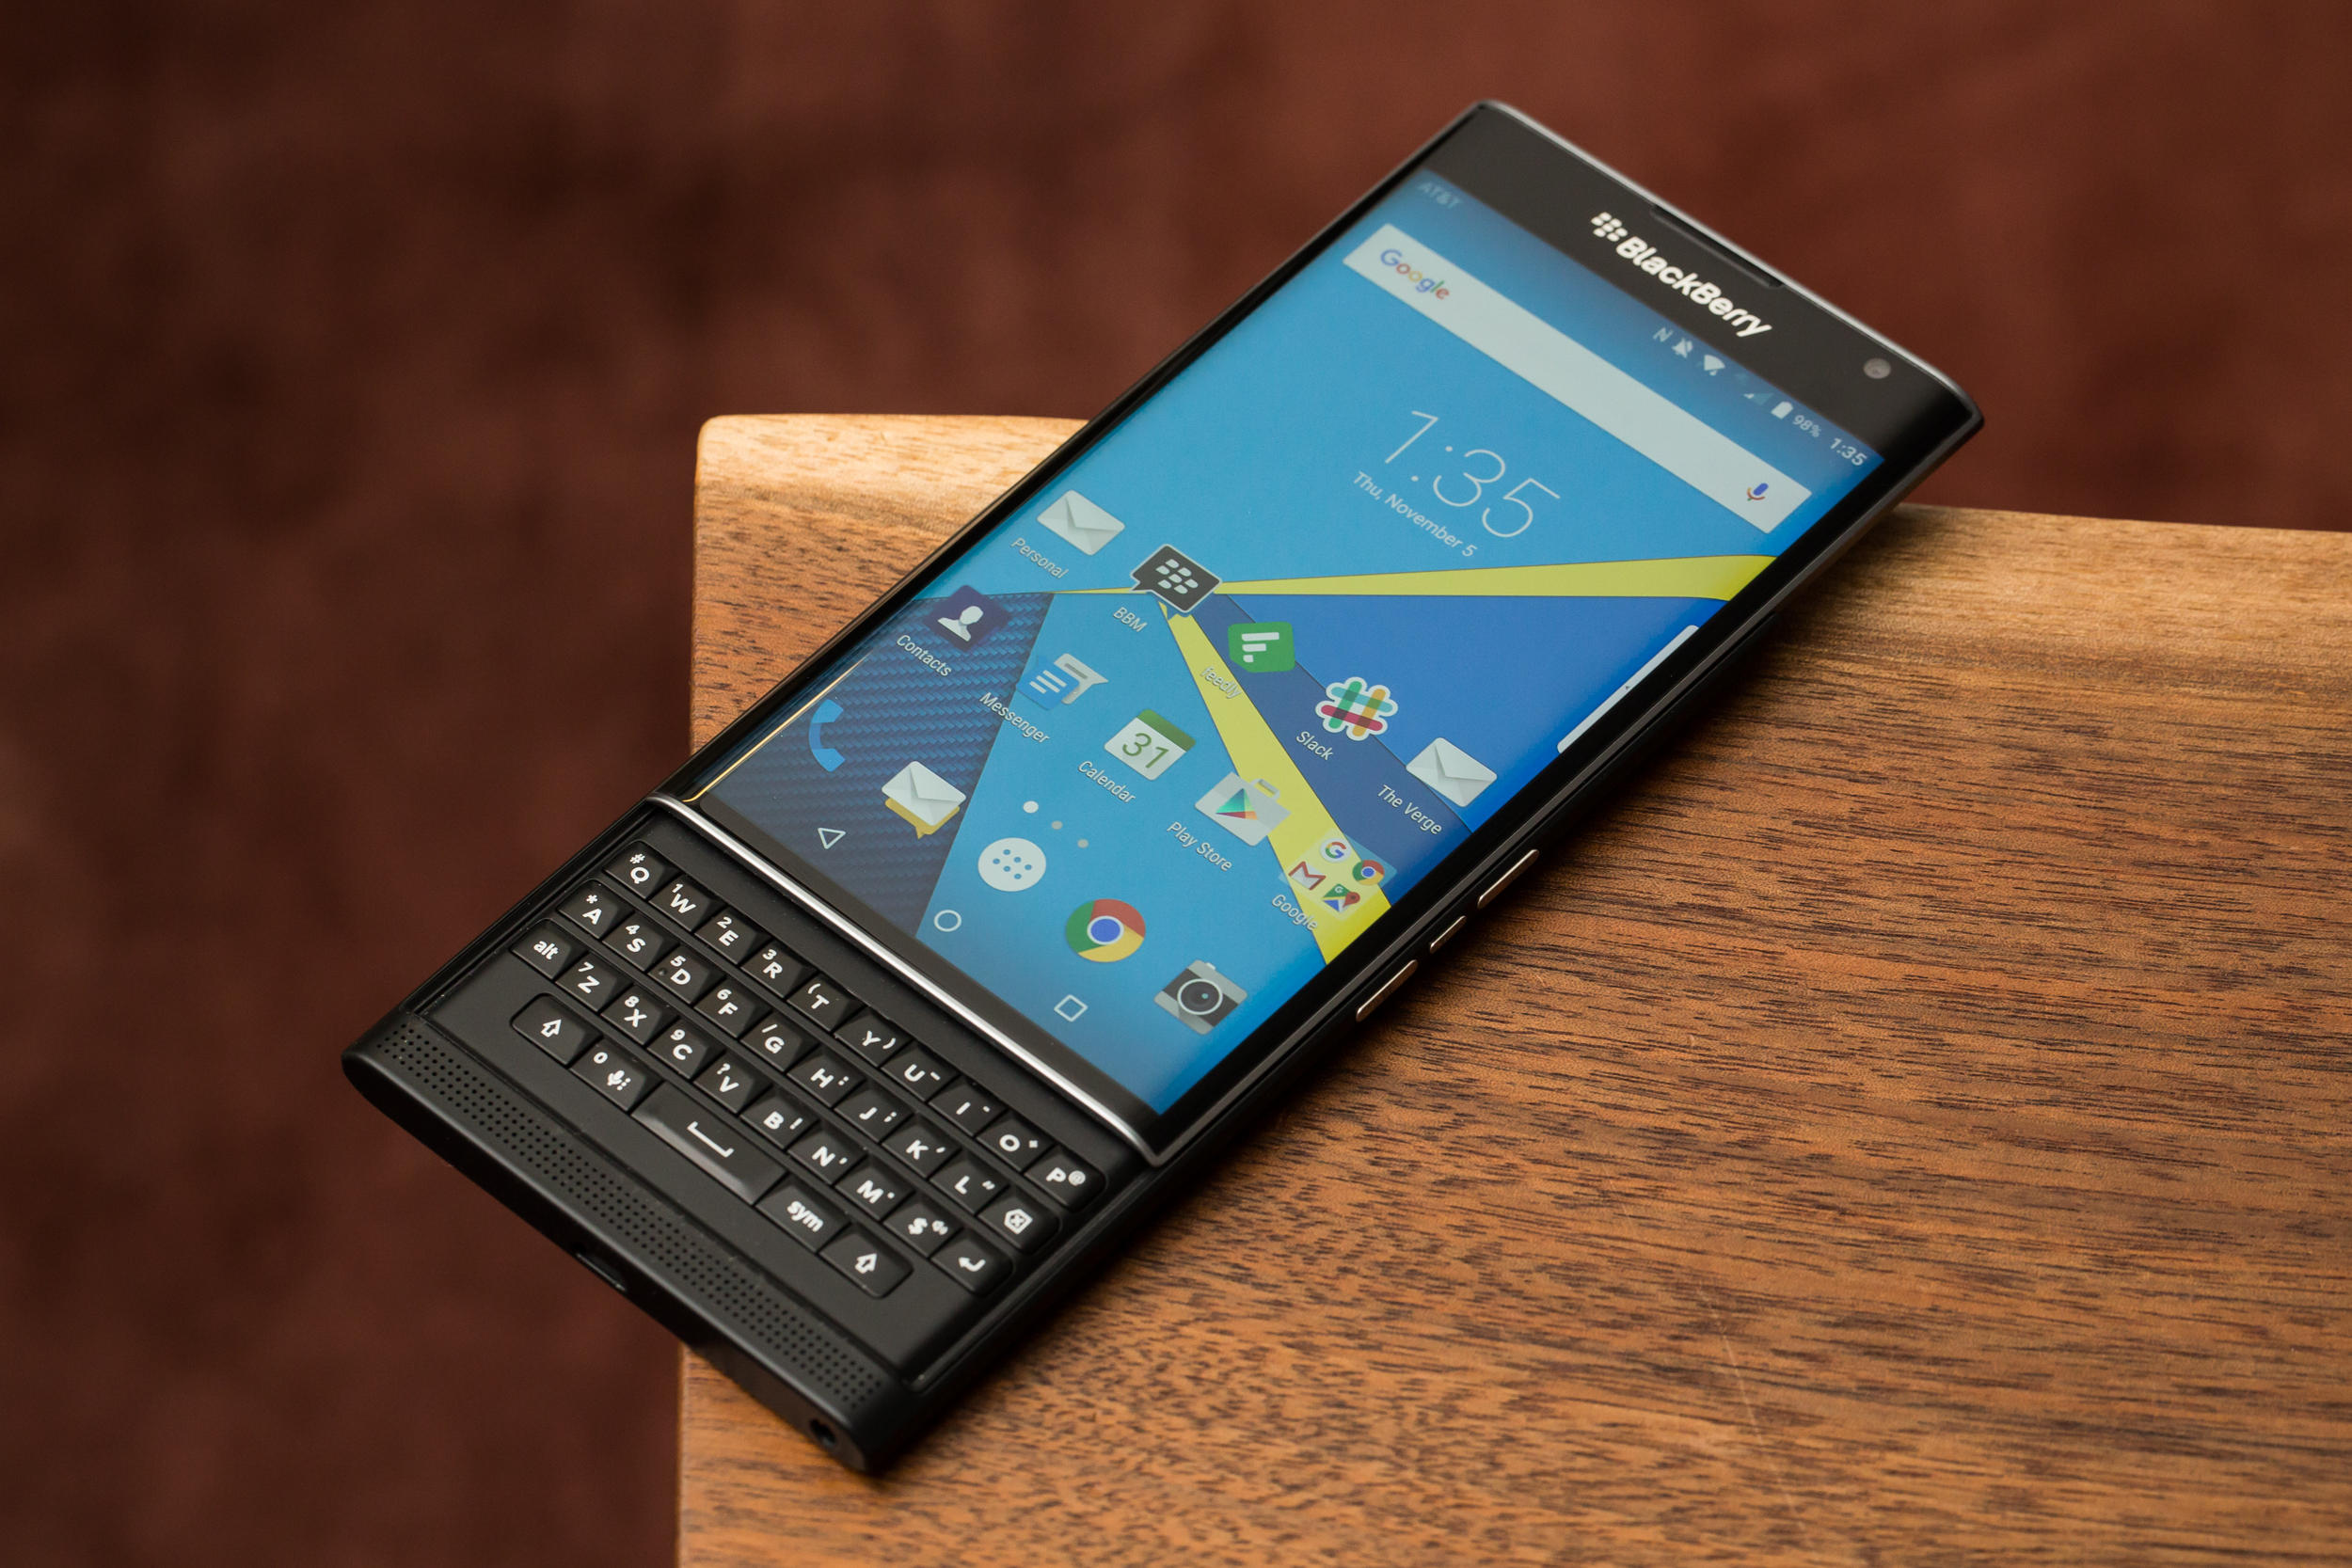 Blackberry Priv Unlocked Smartphone - Black (U.S. Warranty)